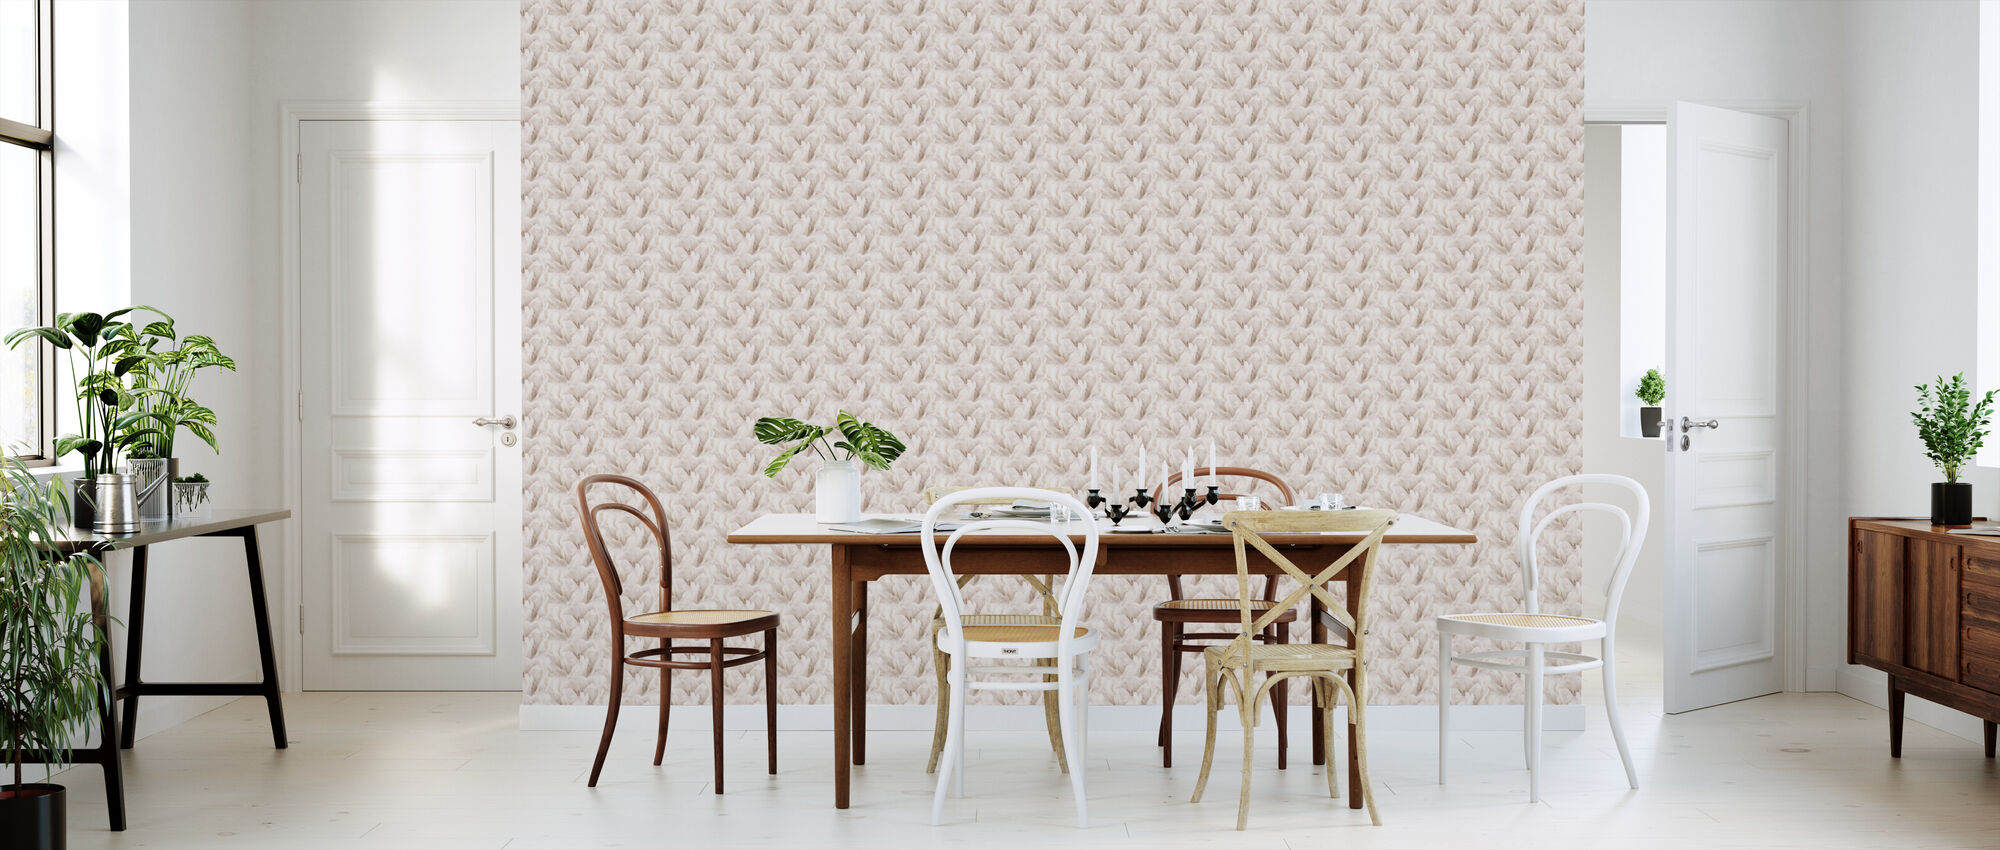 Paper Tulips - Wallpaper - Kitchen